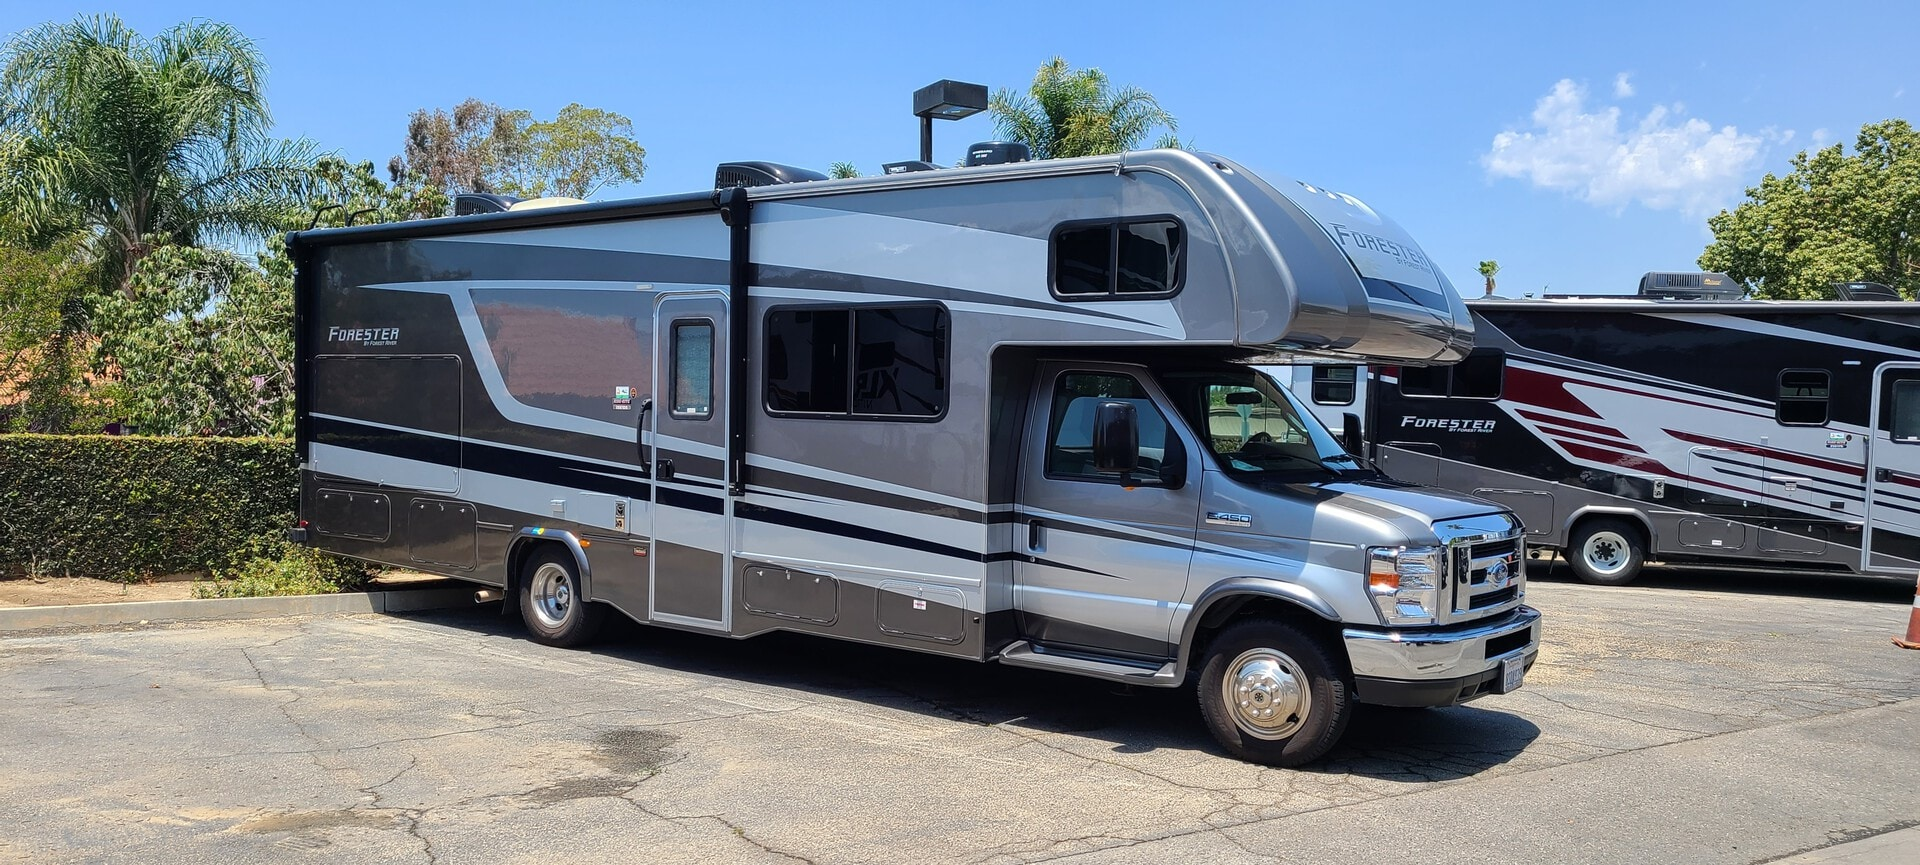 Used, 2021, Forester RV, 2861 DSF, RV - Class C